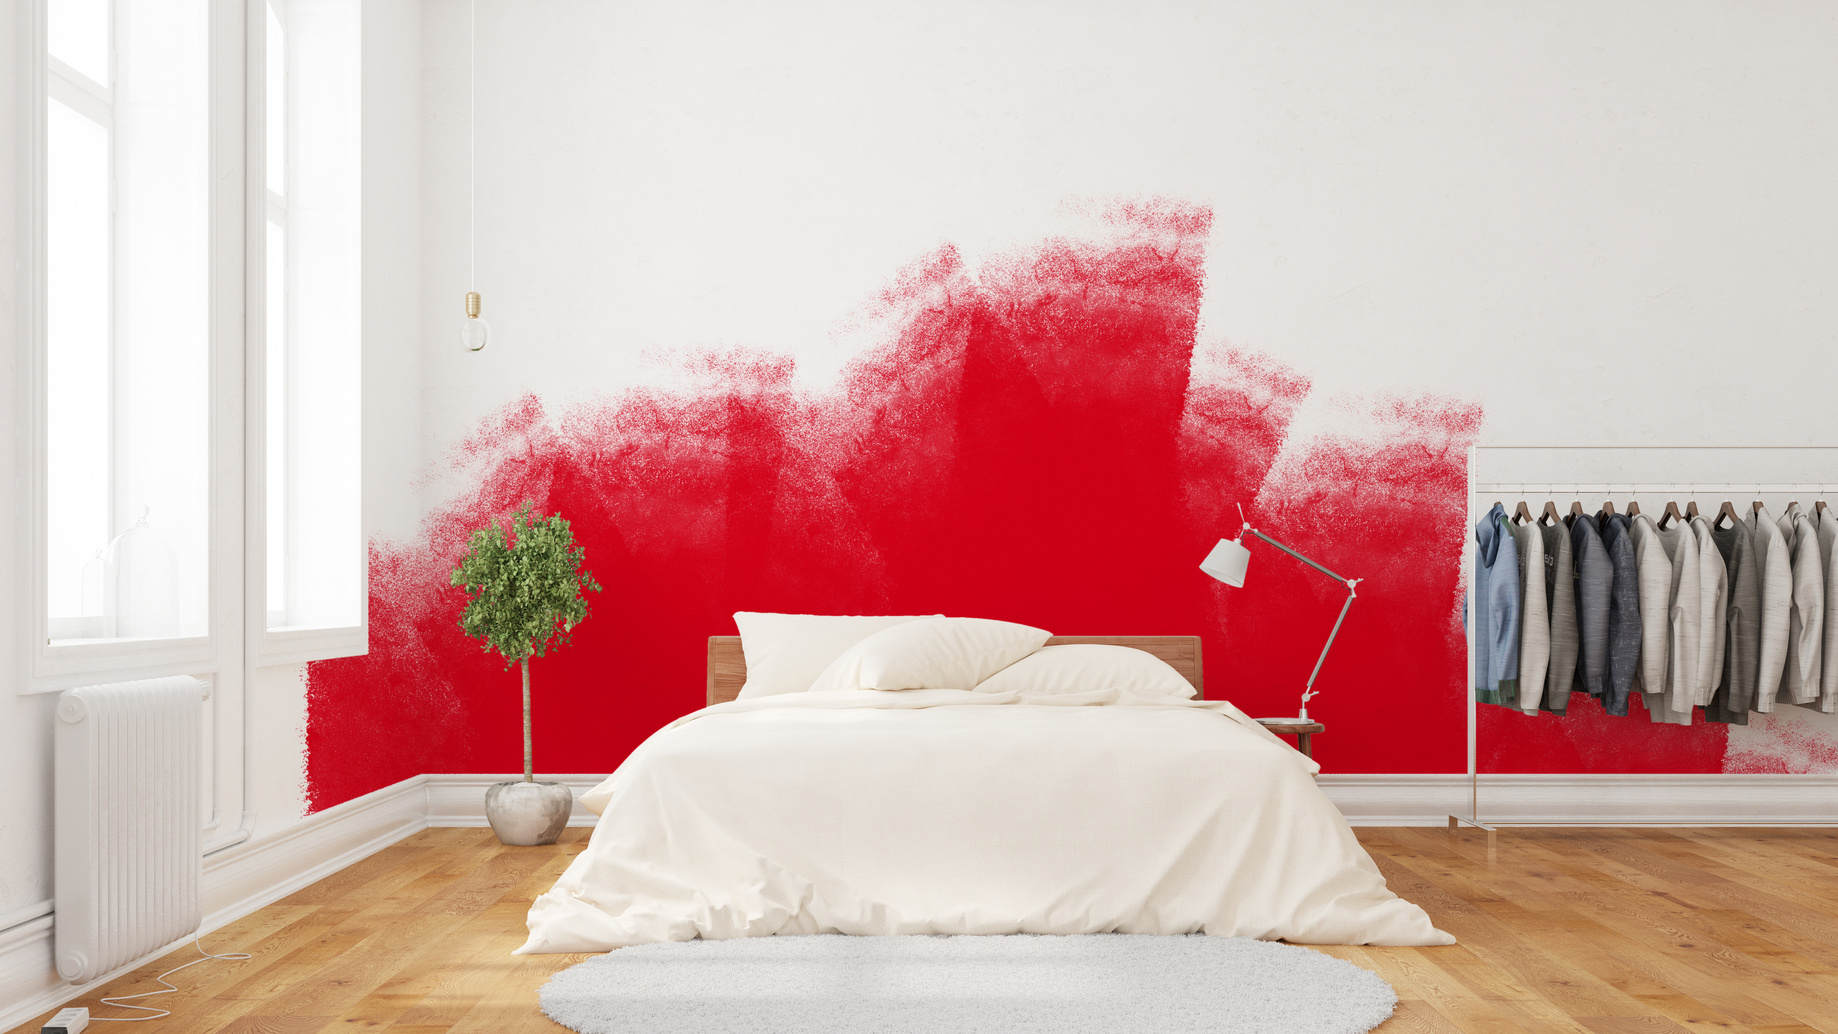 Peinture d une chambre d adulte nos id es d co for Idees decoration chambre adulte